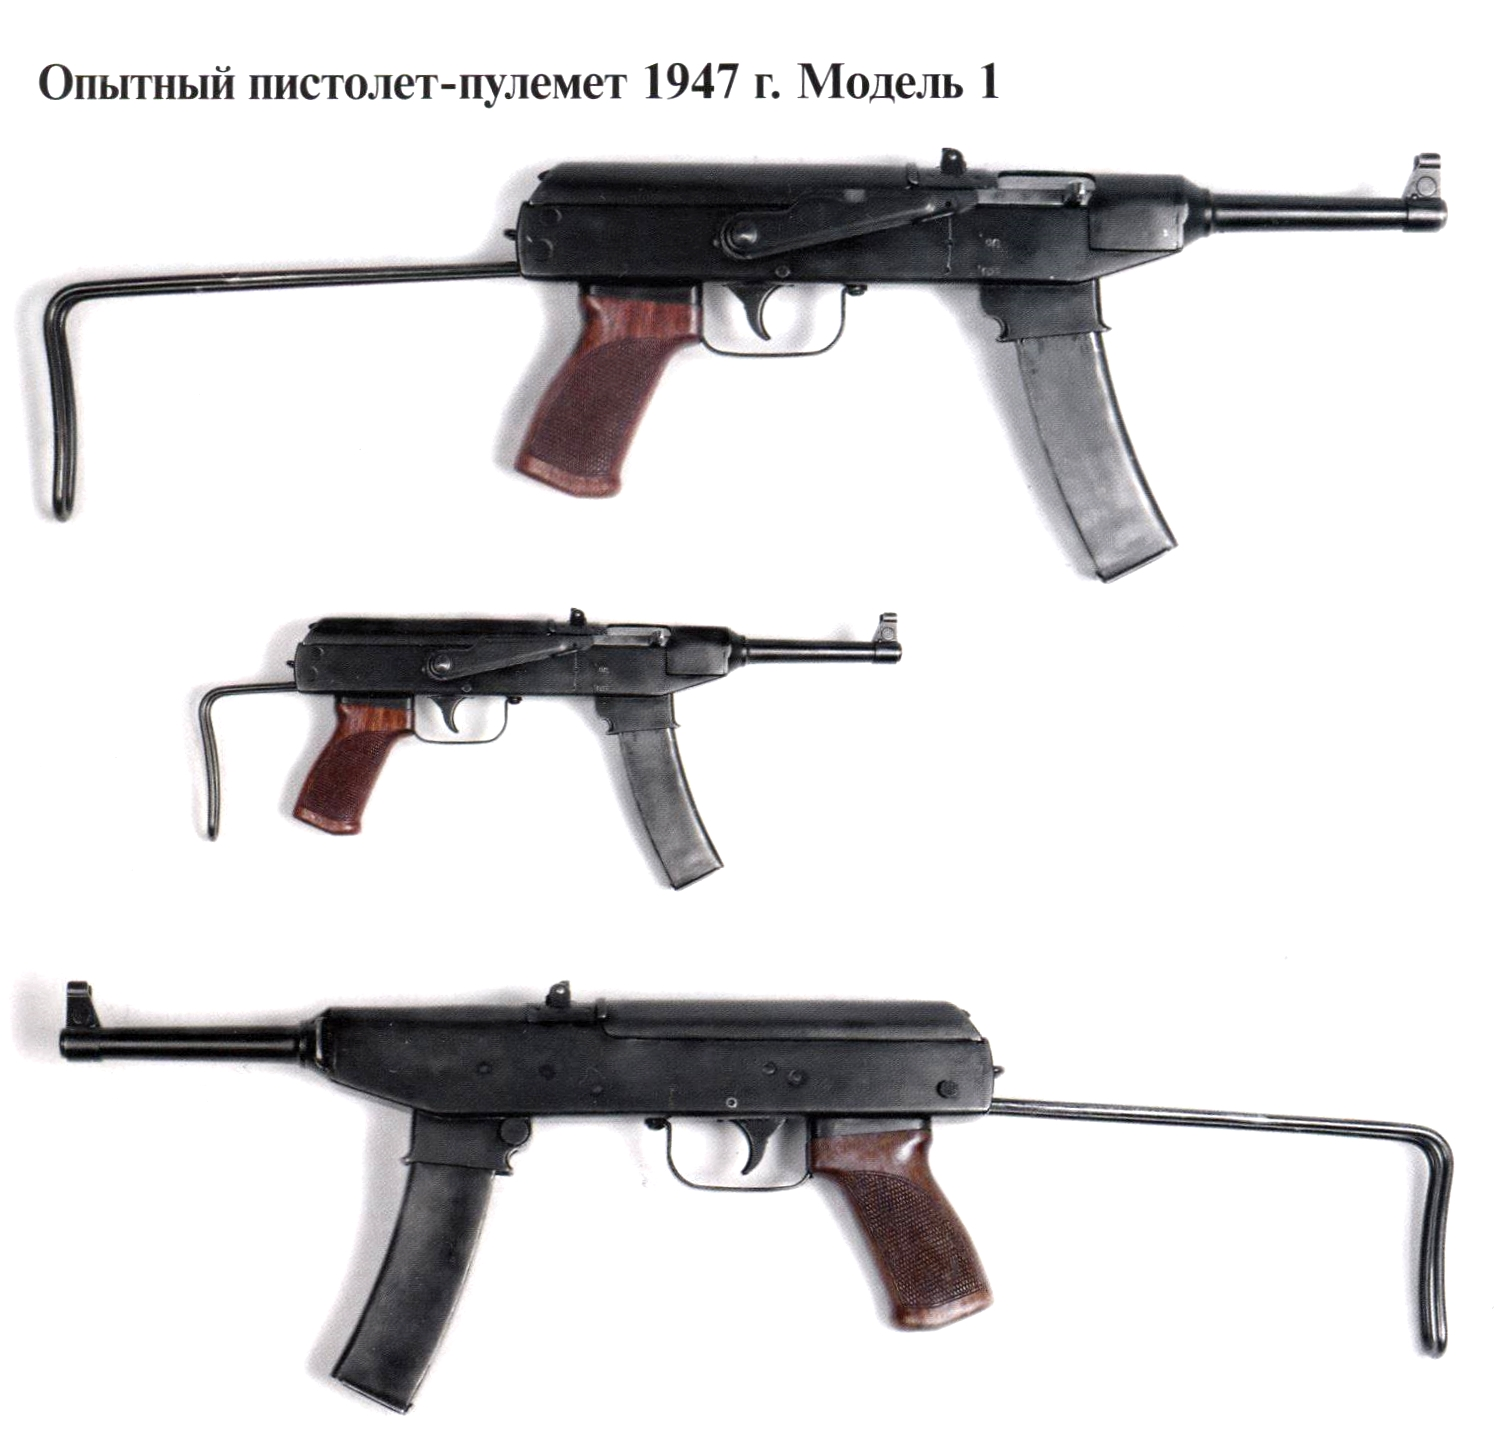 Kalashnikov conspiracy theories and how to refute them part 2 147999549767231724729031572413499o pooptronica Images